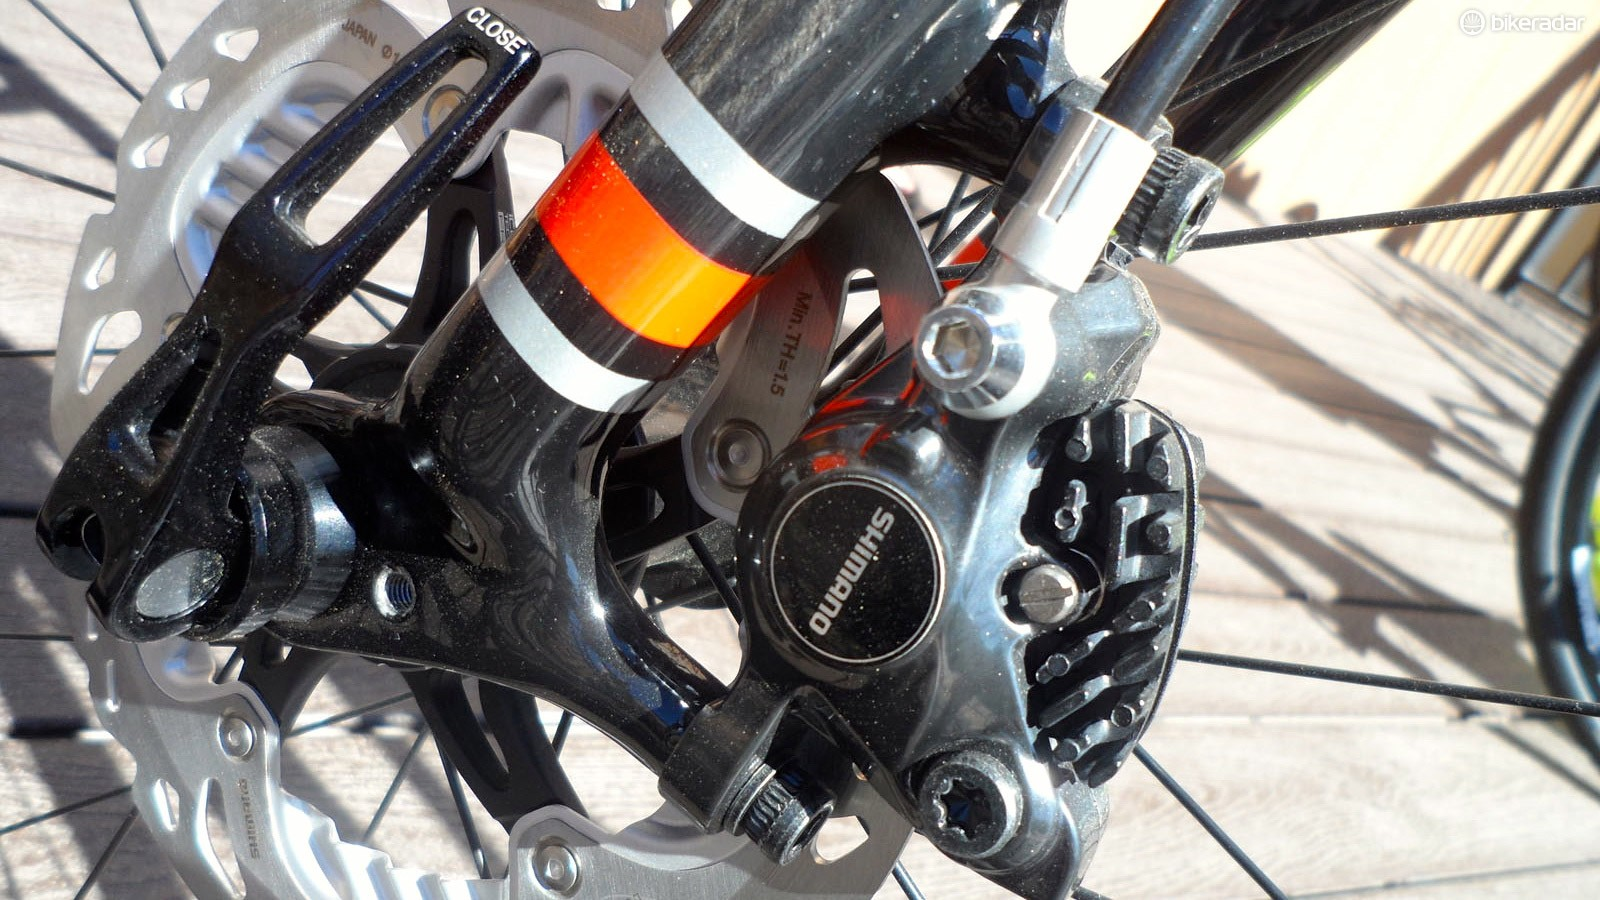 The Grade Alloy gets the full-carbon fork with 15mm thru-axles and ICE-rotor-equipped Shimano hydraulic brakes